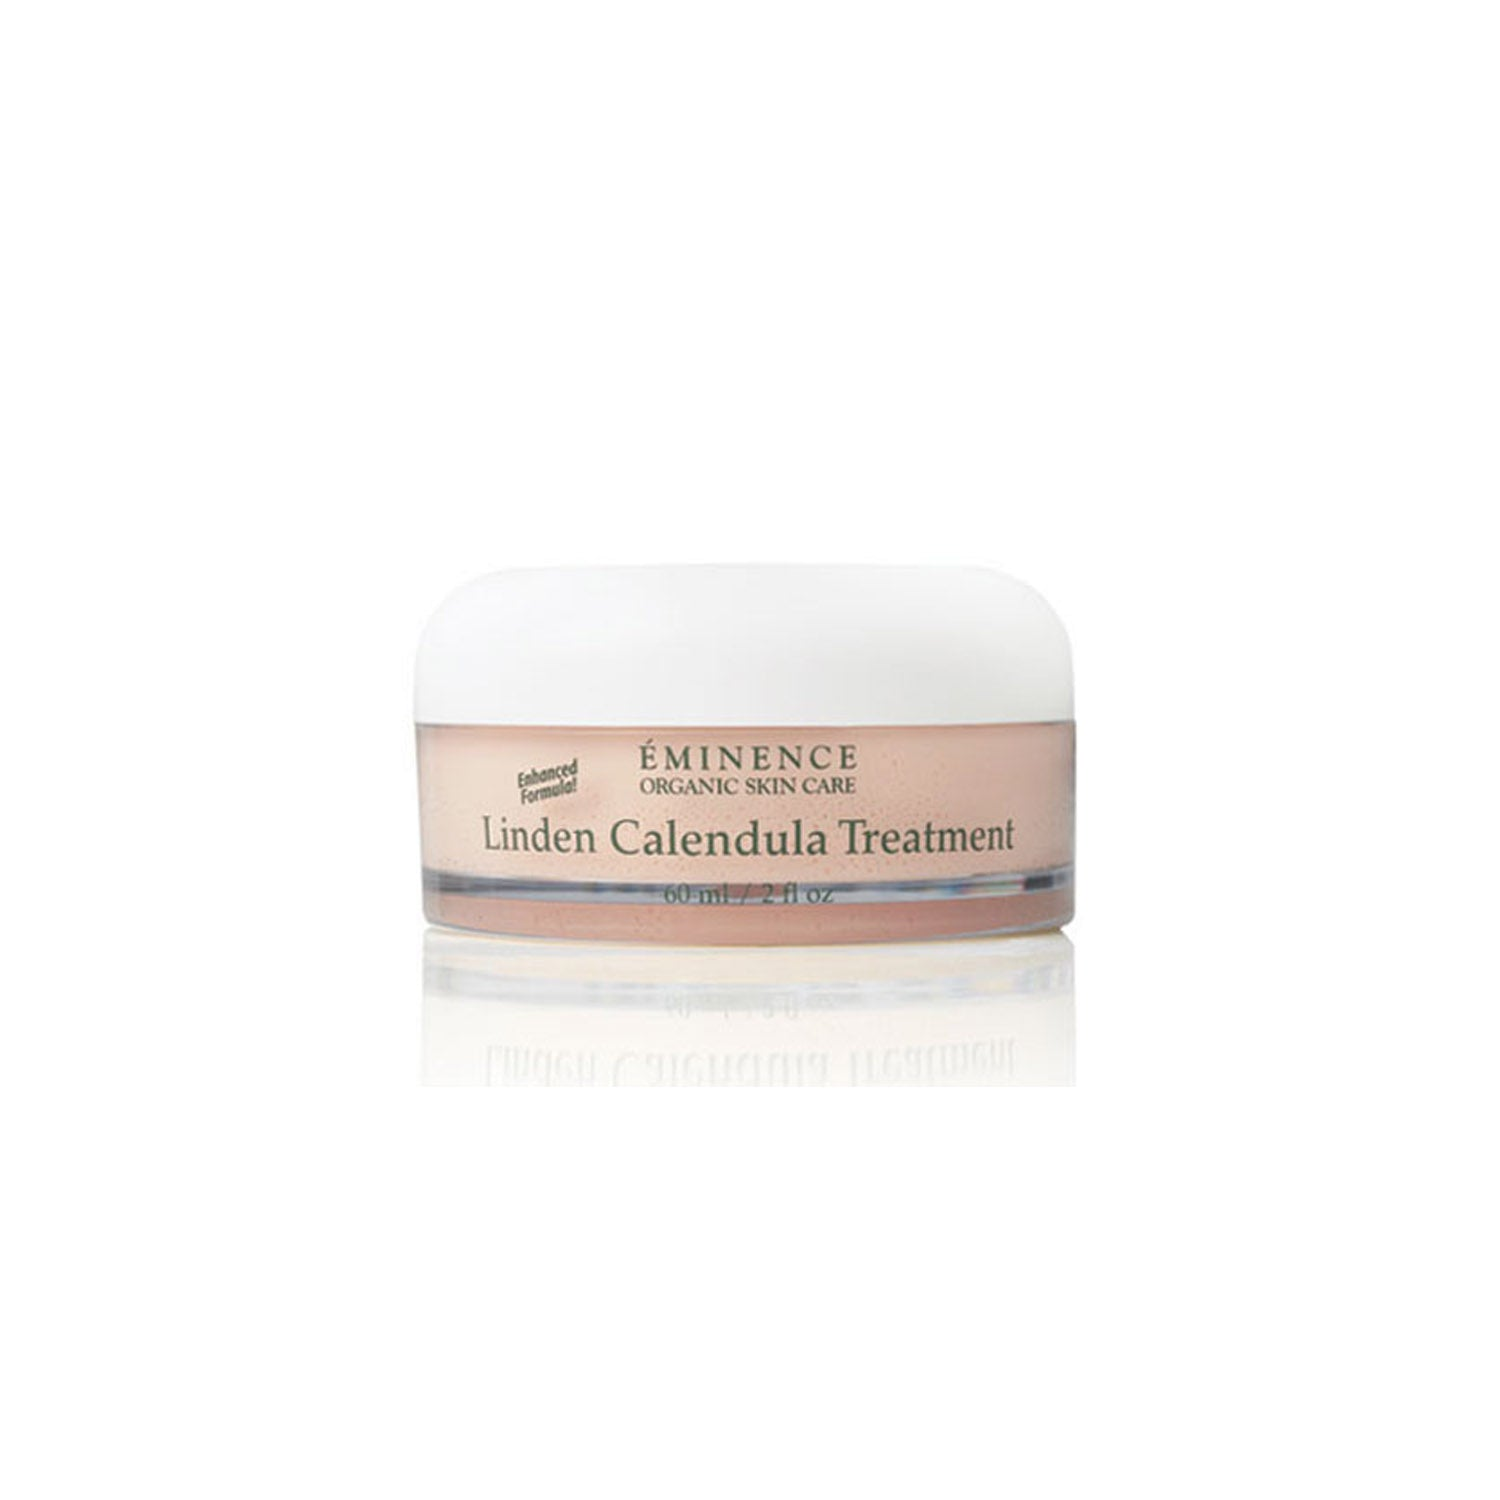 Eminence Linden Calendula Treatment  2oz 60ml